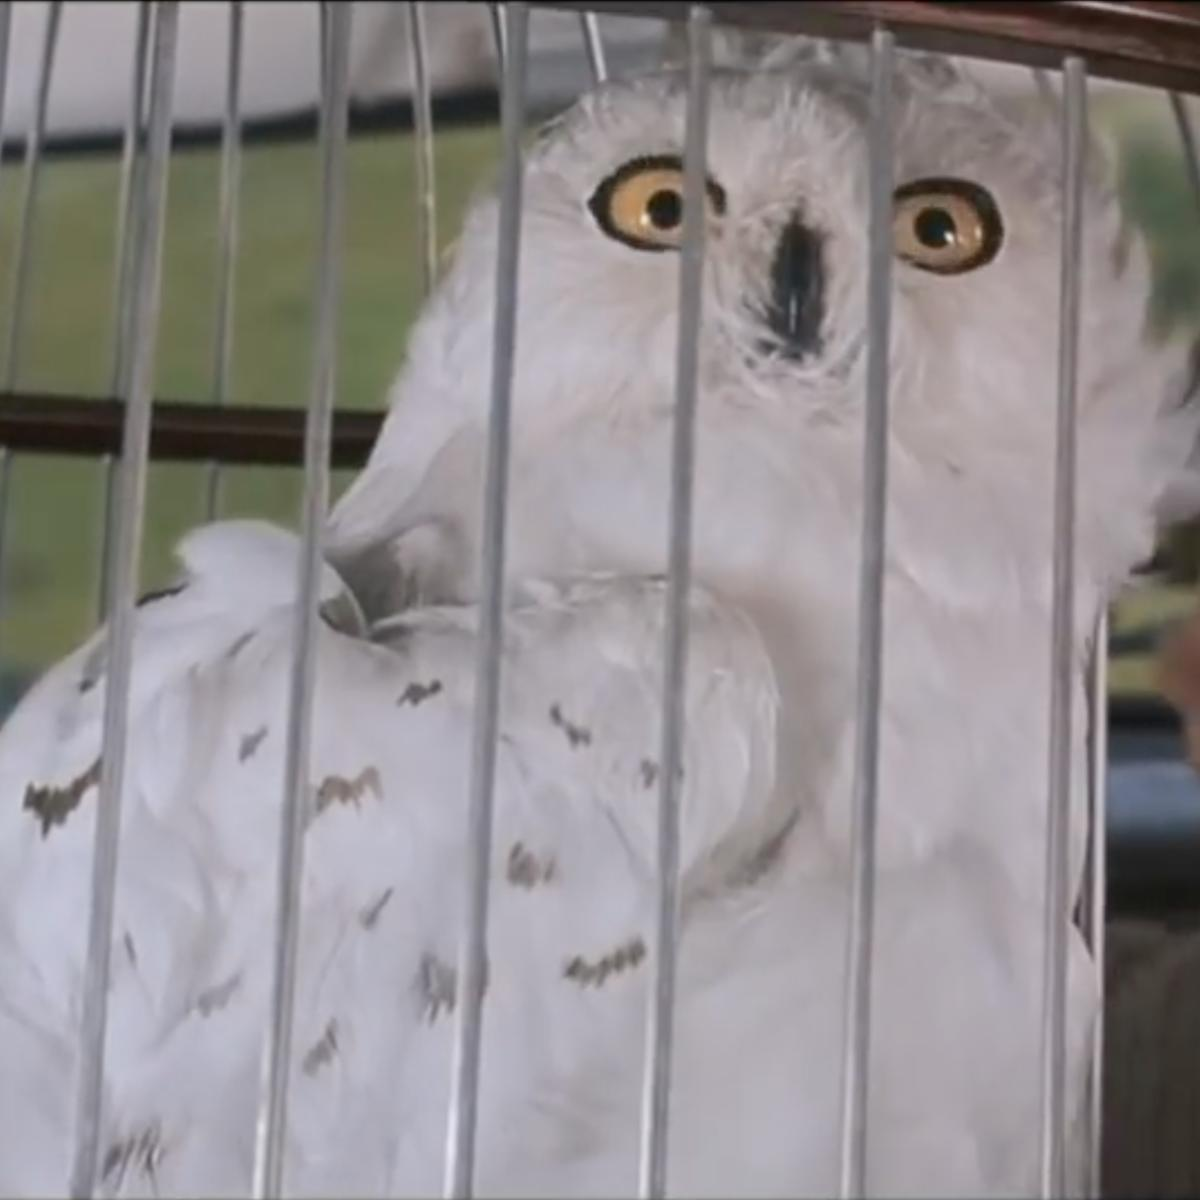 Harry Potter scene with Harry, Ron and Hedwig